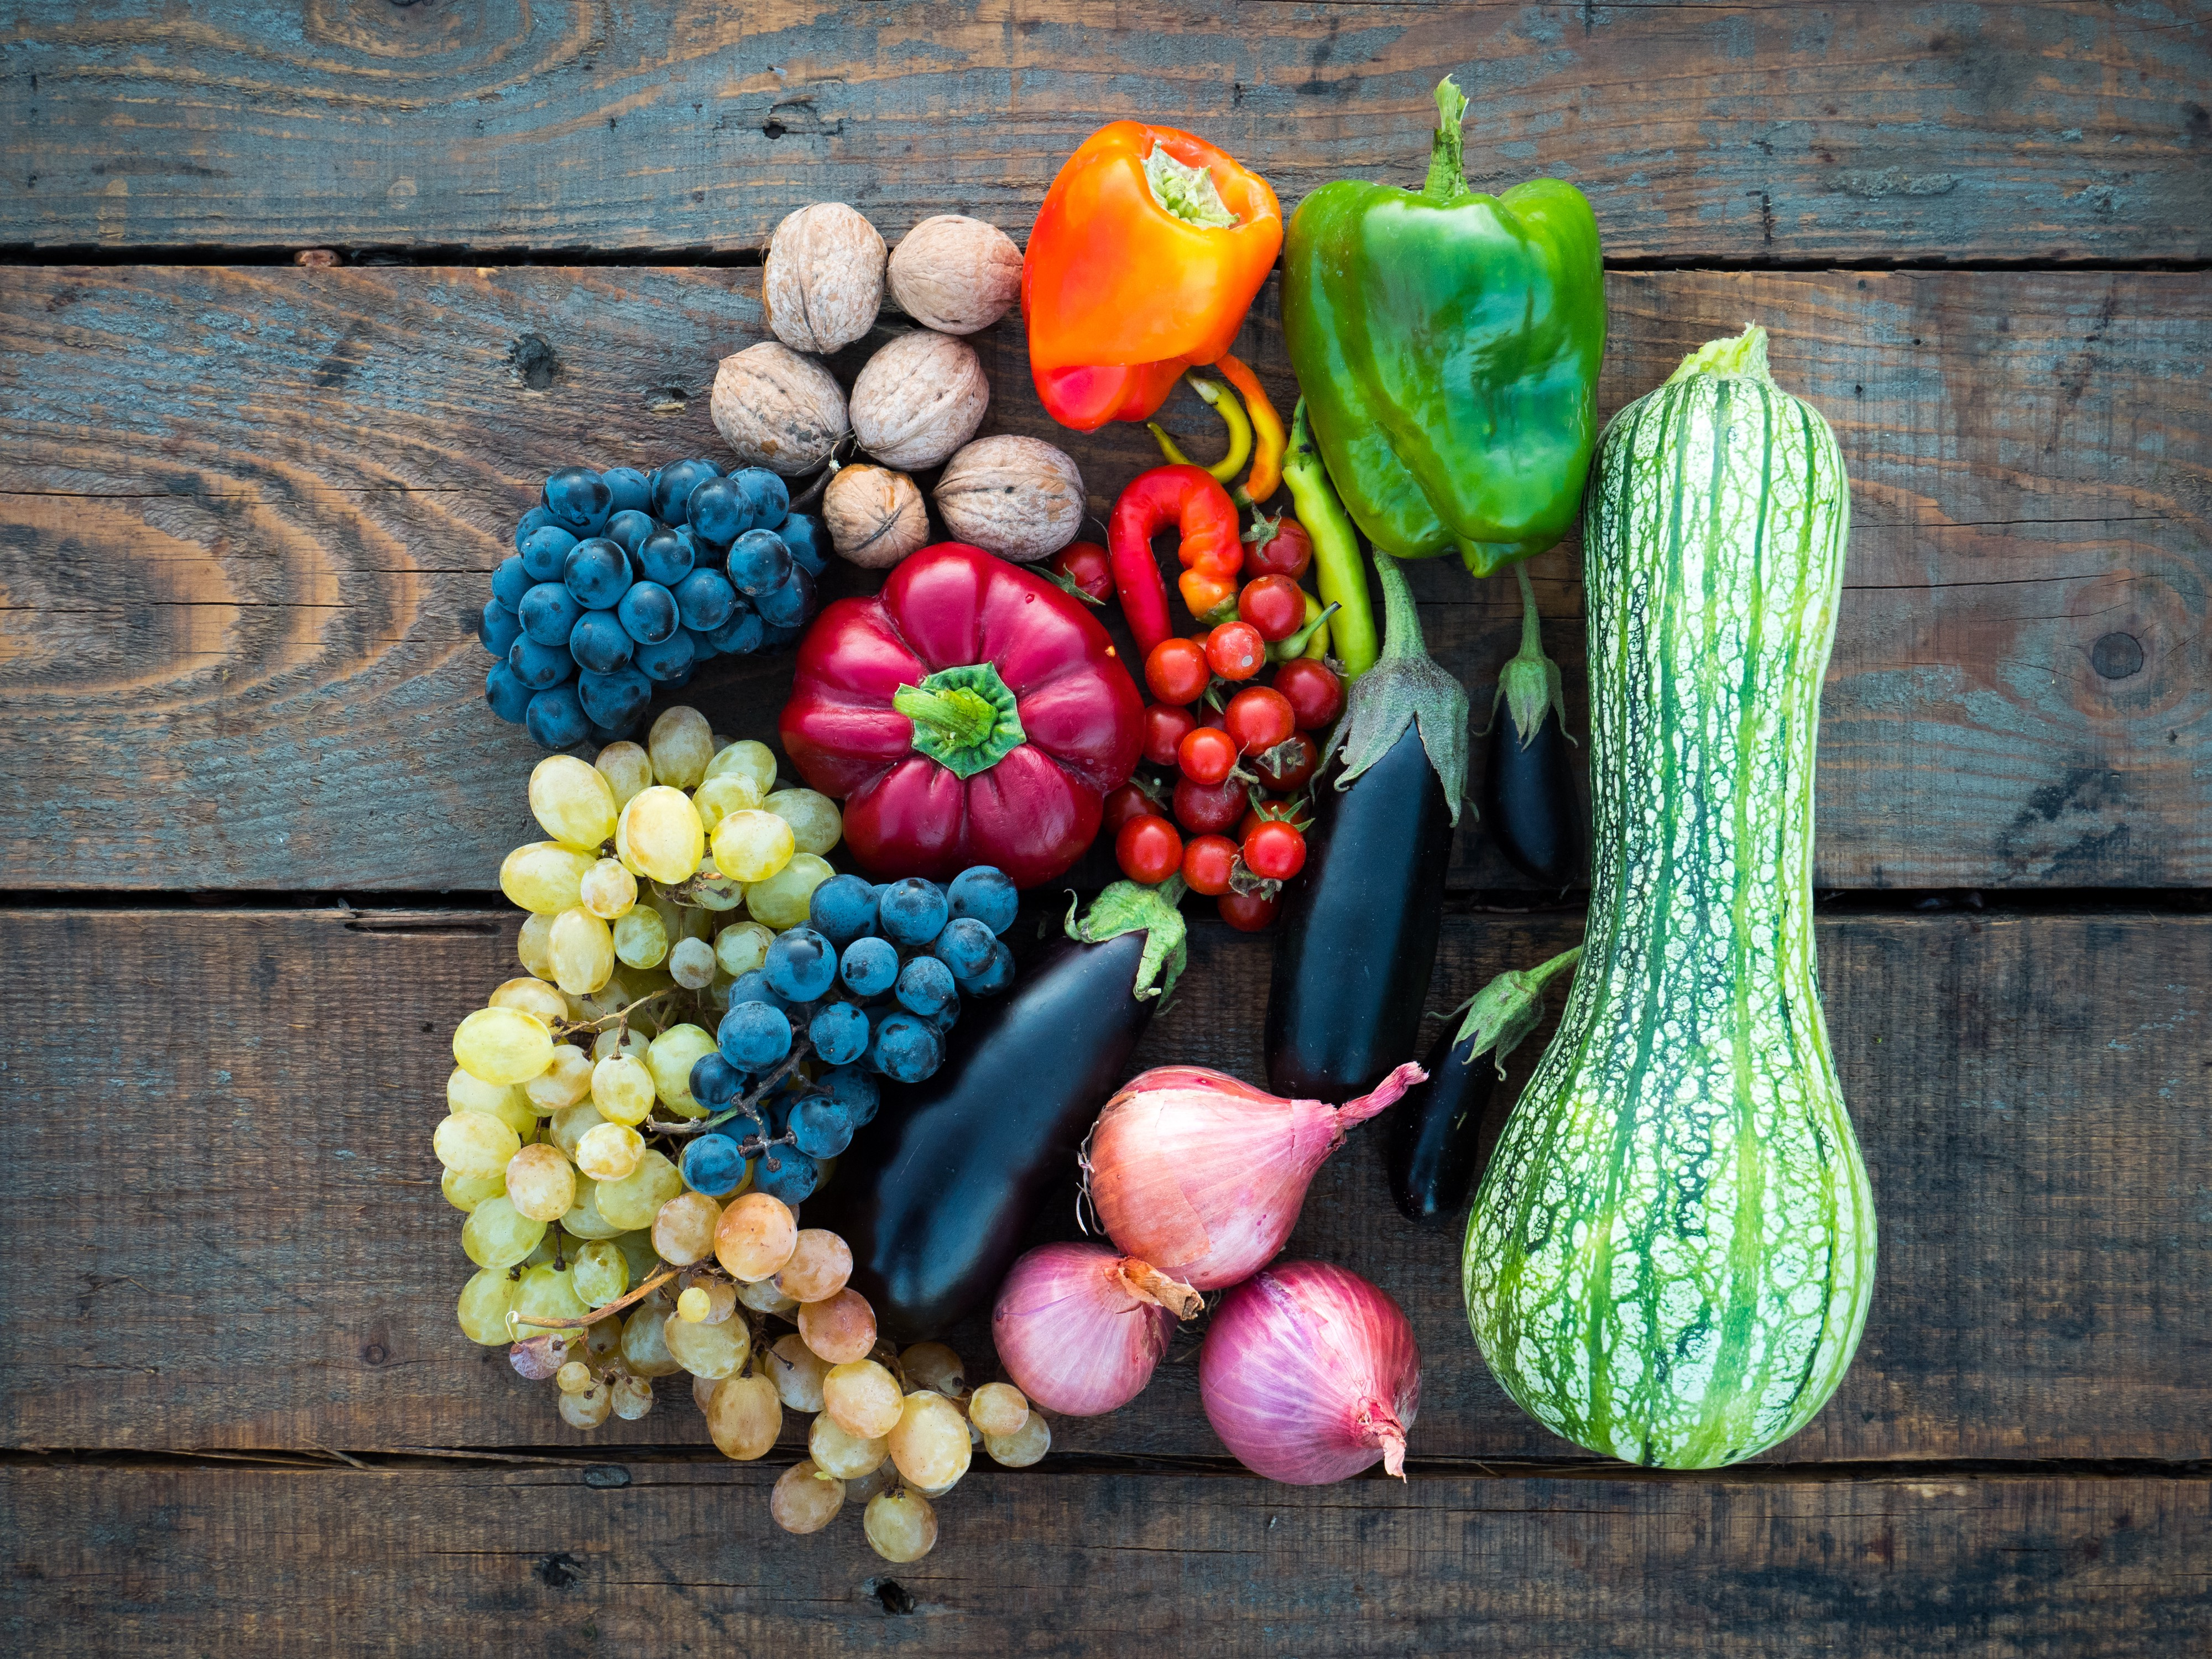 Overhead shot of fruits and vegetables on a distressed wooden table.